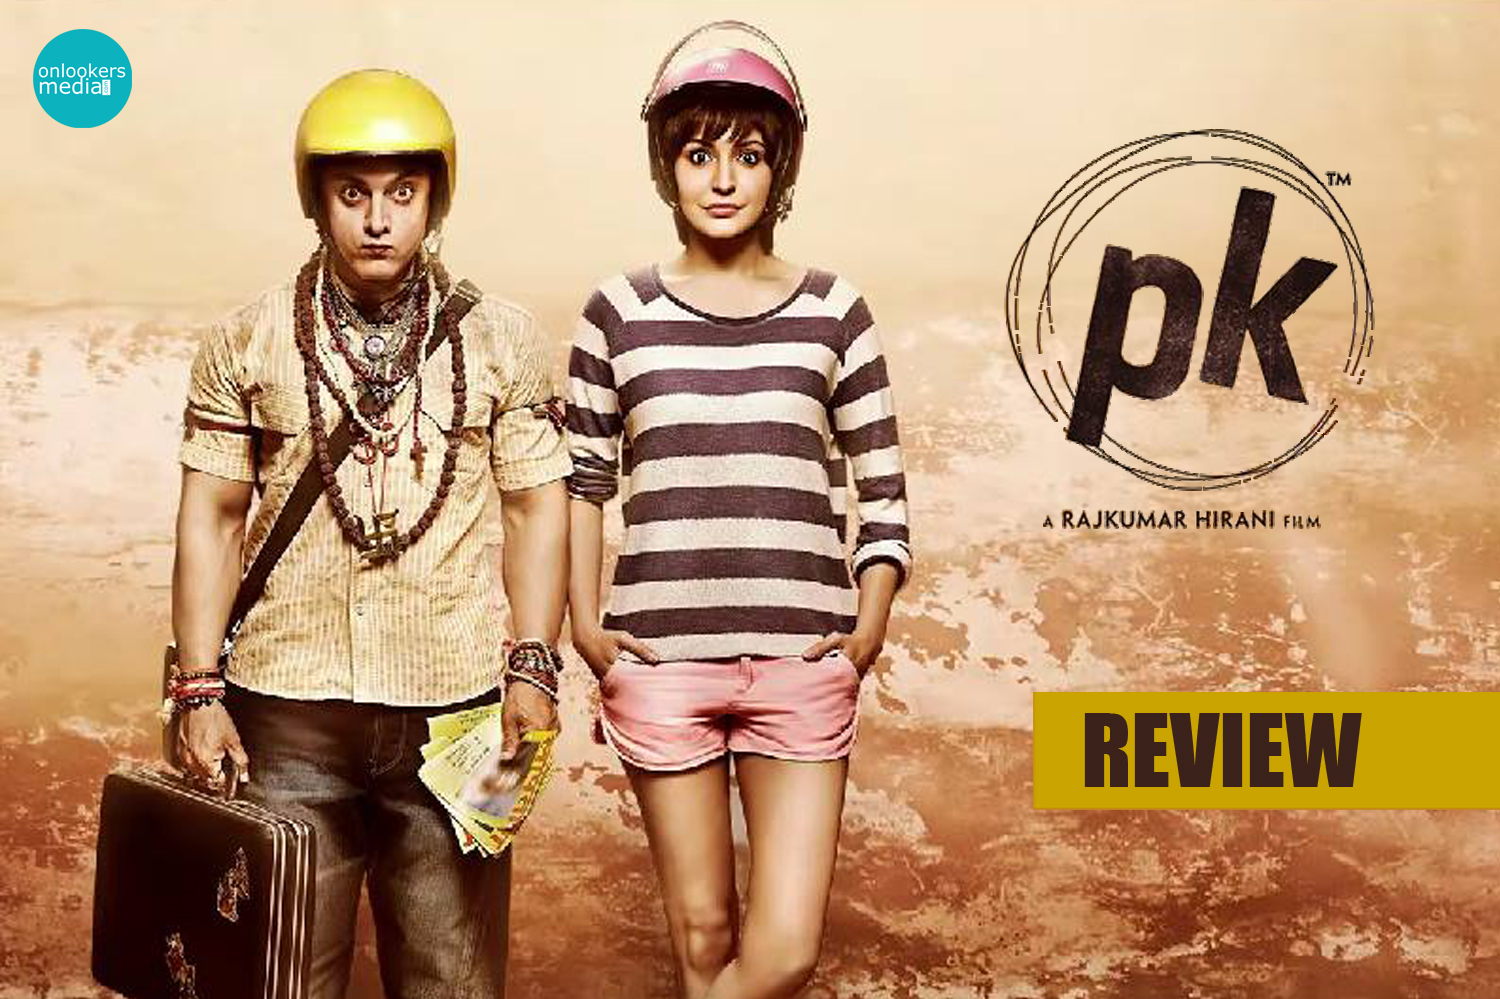 PK Review-Rating-Collection-Theater Report-Anushka Sharma-Aamir Khan-Onlookers Media